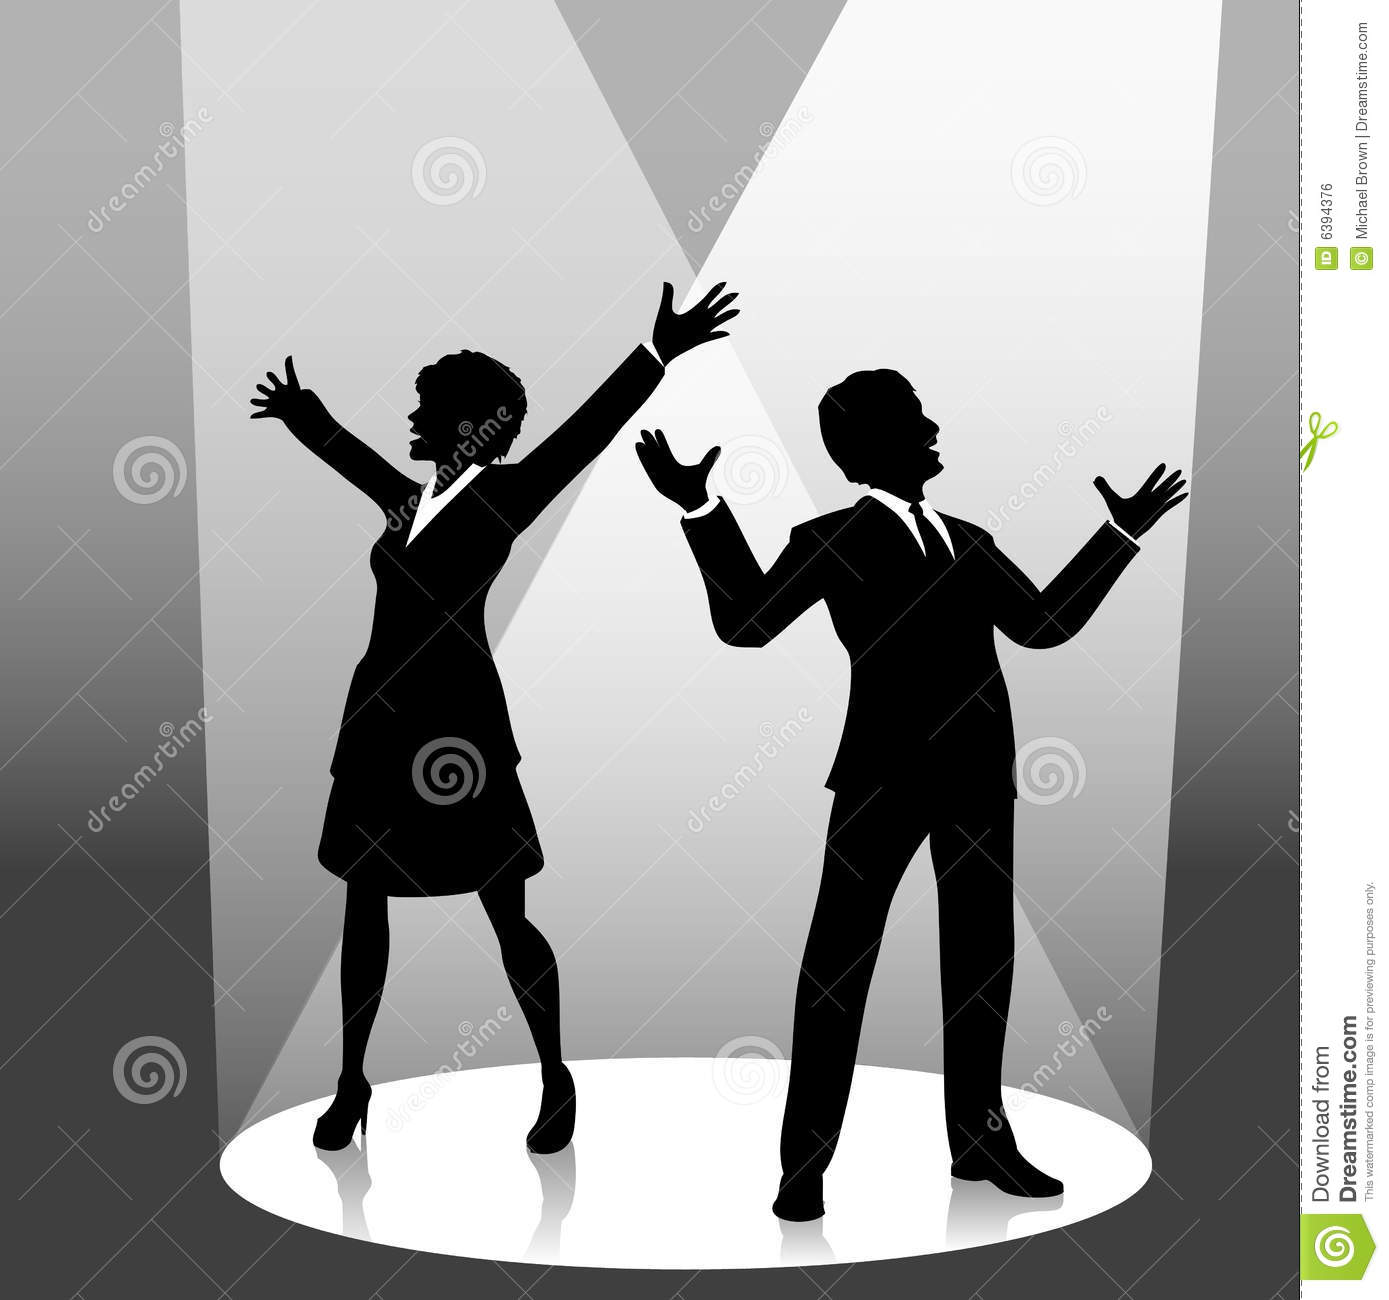 Business People In Spotlight Royalty Free Stock Image.